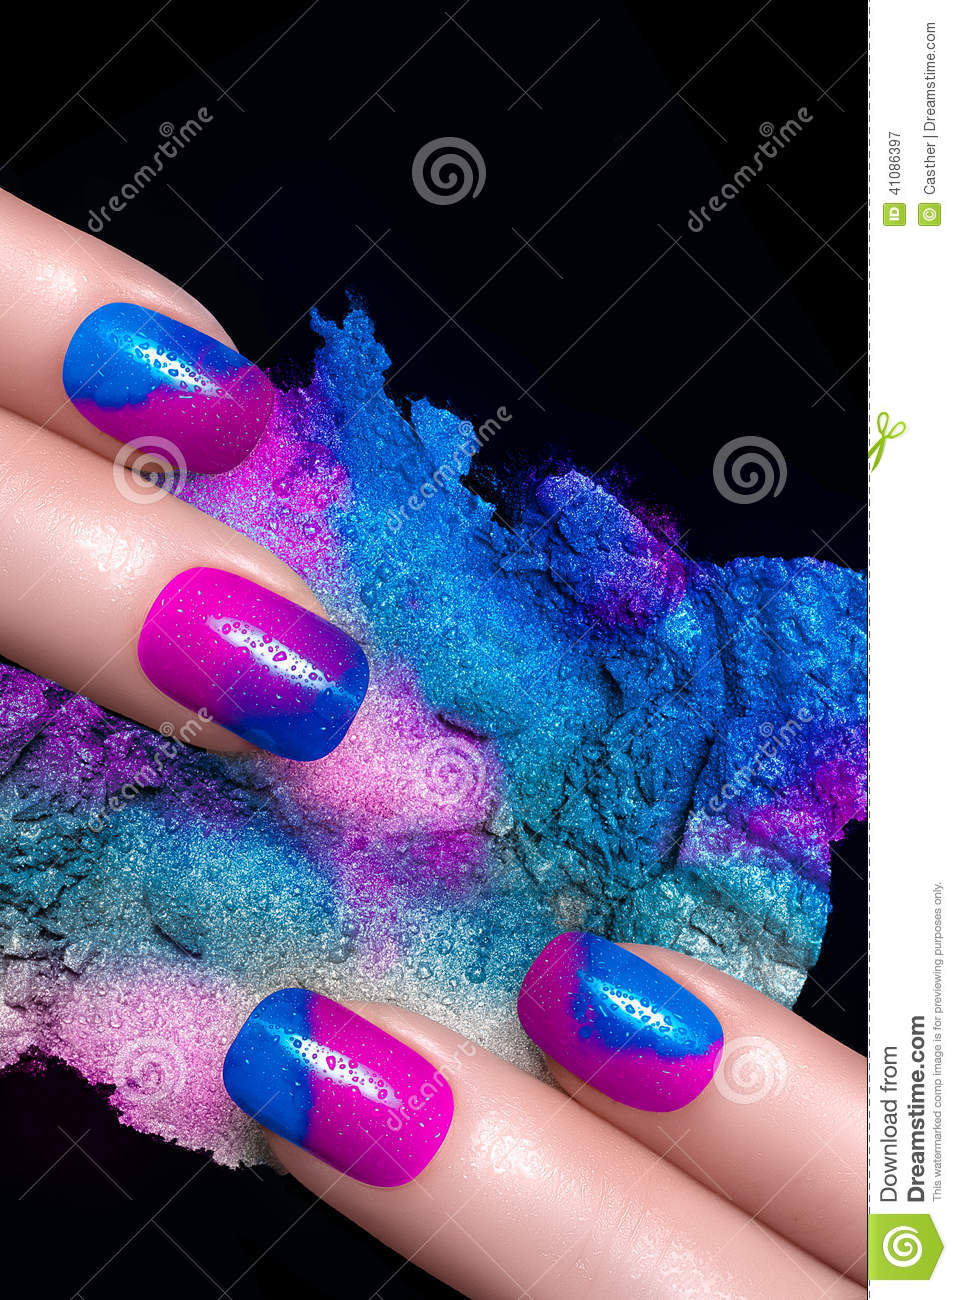 nail art fingers with luxury nails and crushed eye shadow with drops